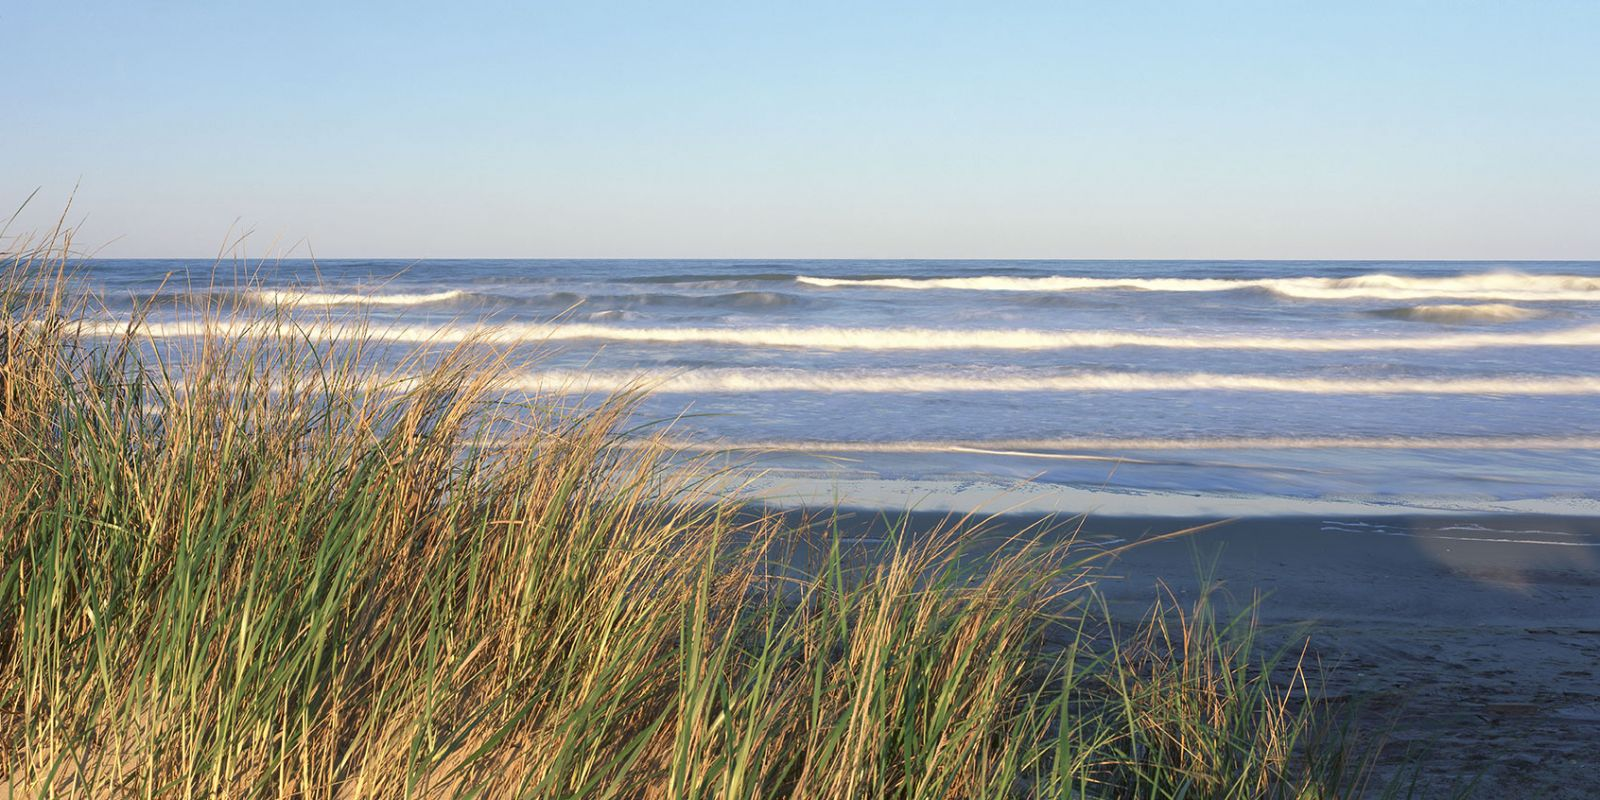 Seagrass and calm waves on Cape Hatteras